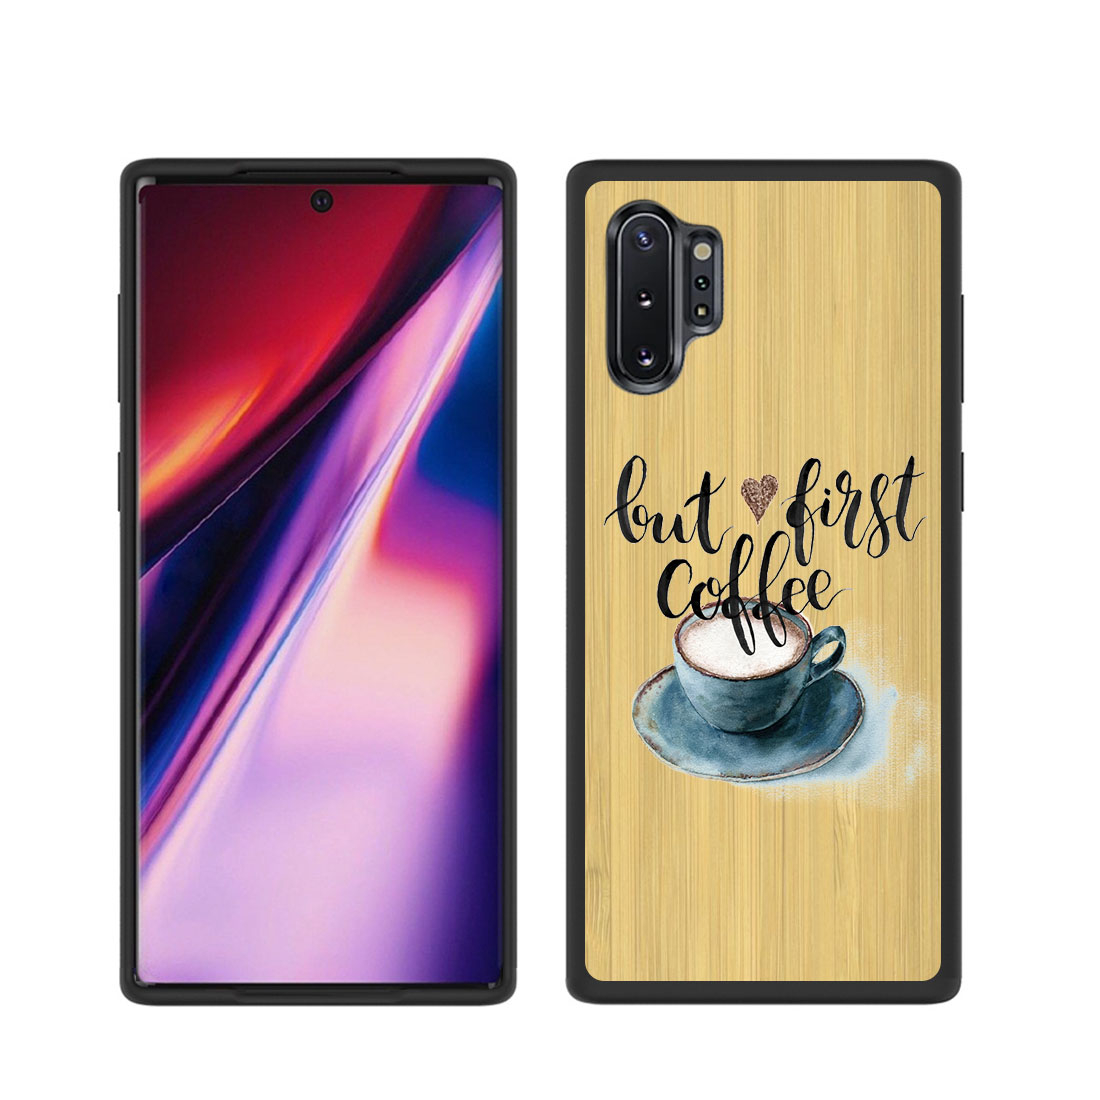 FORCELL BAMBOO Drevený kryt Samsung Galaxy Note 10 Plus COFFEE FIRST (073)